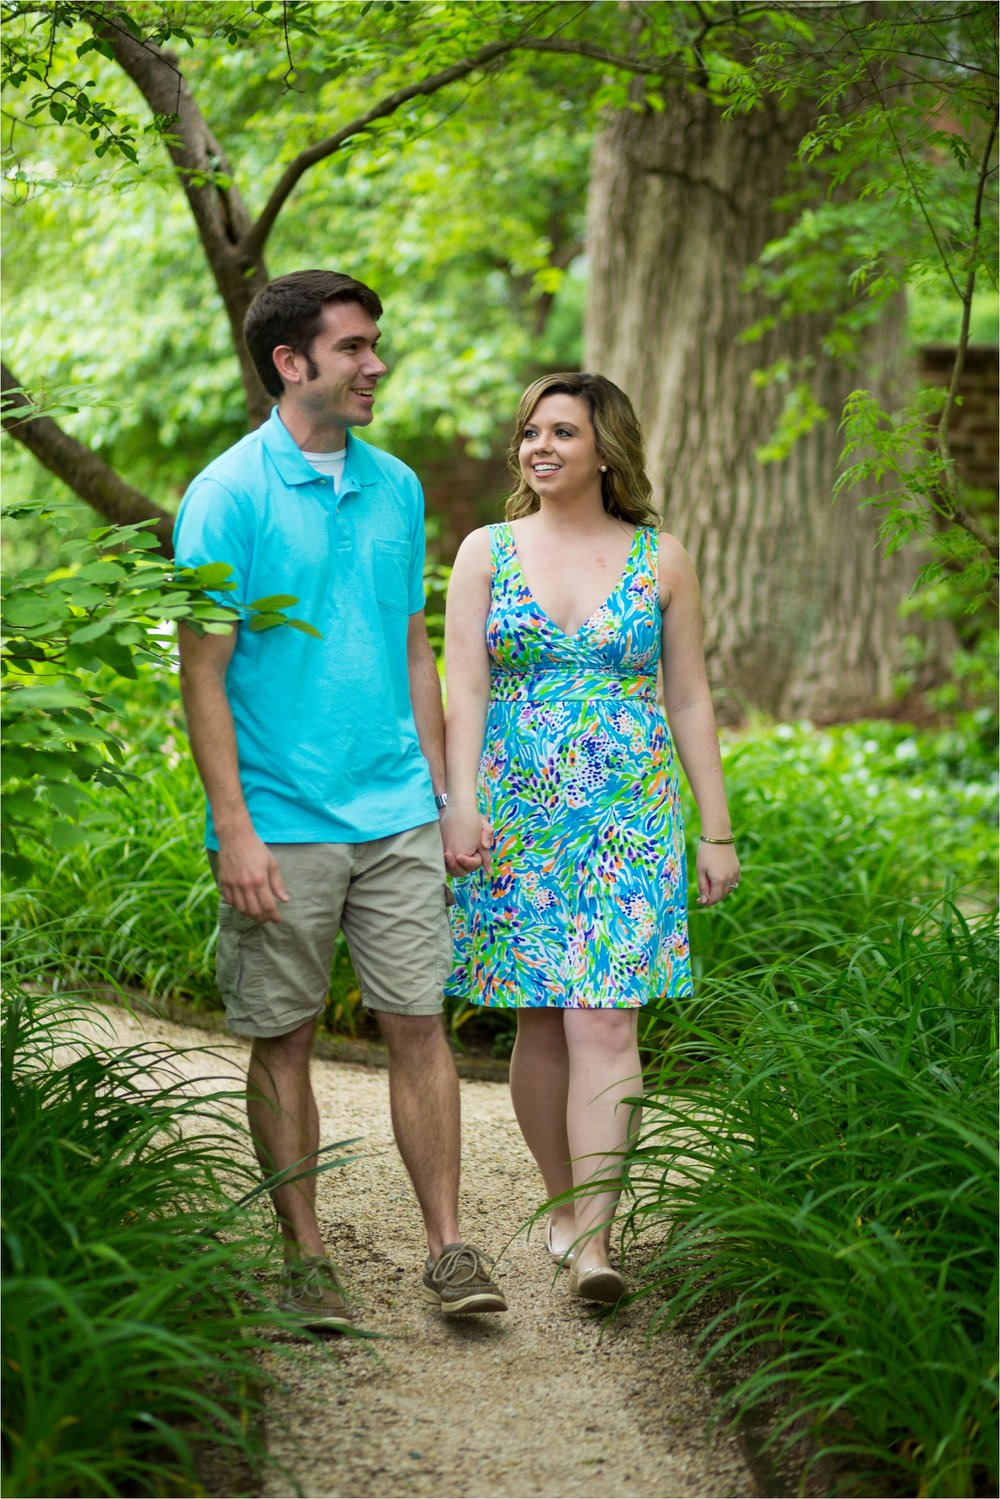 Charlottesville-Virginia-Spring-Engagement-Session-4802.jpg